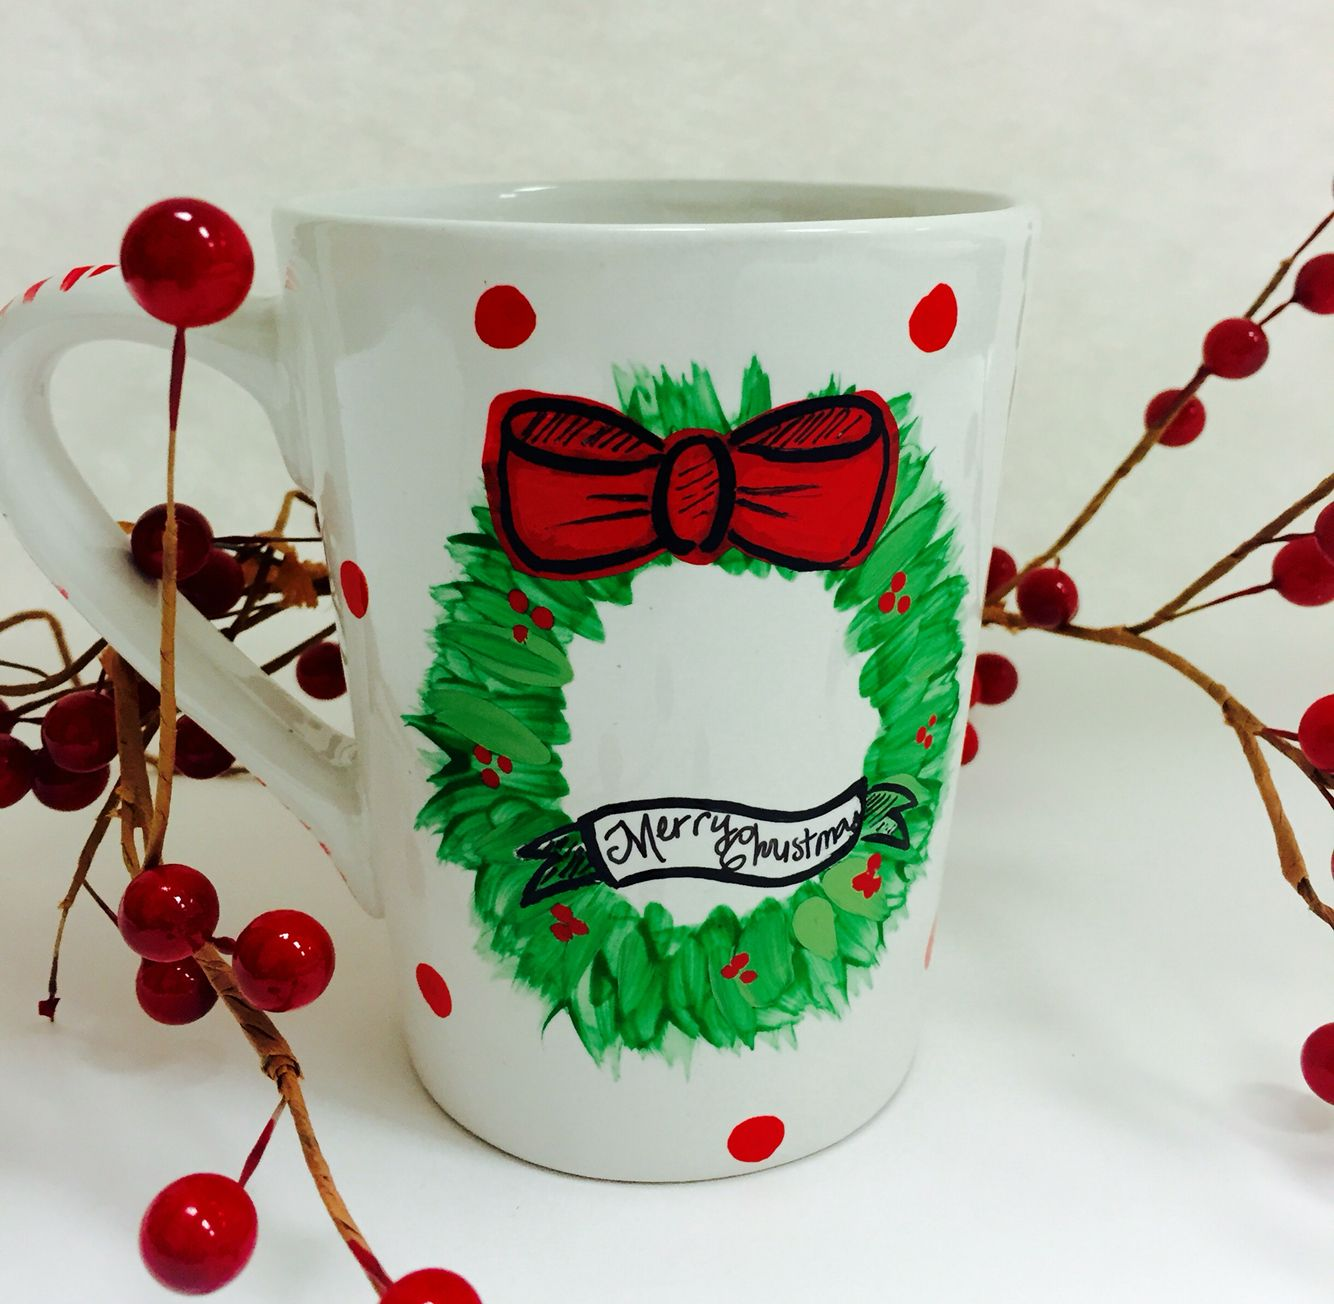 Christmas mug from the artroom and crafts $10